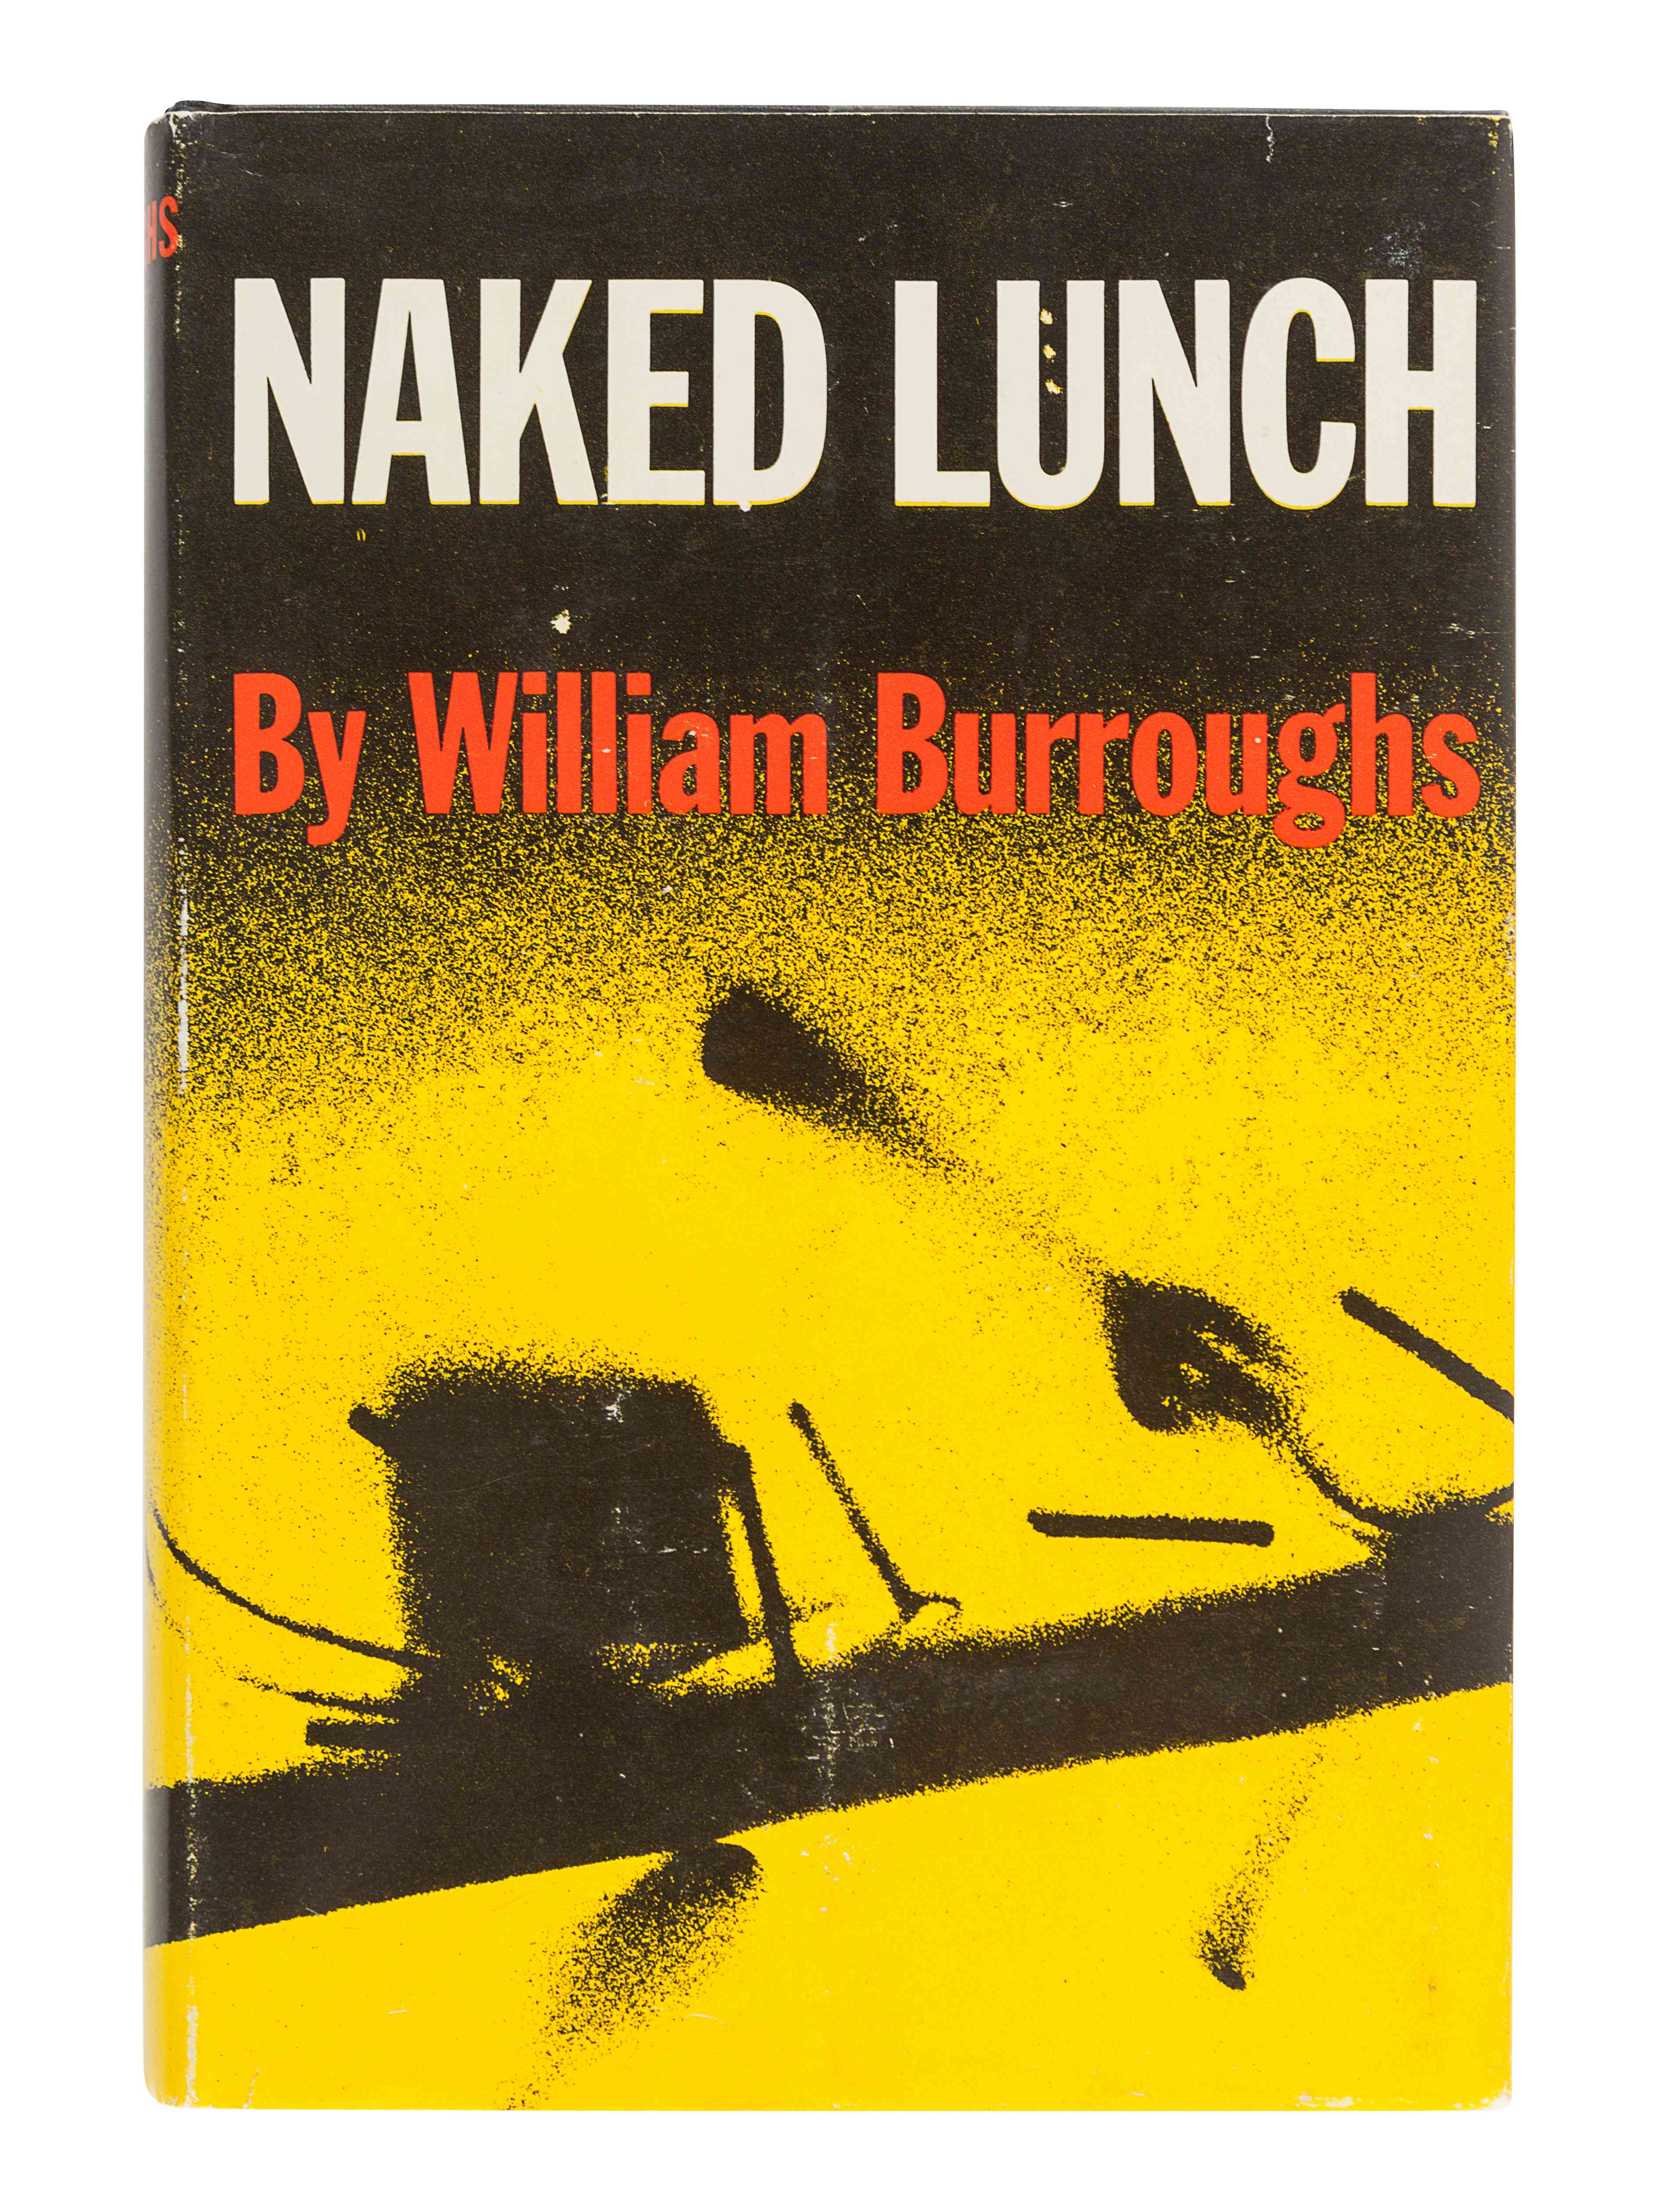 BURROUGHS, William S. (1914-1997). Naked Lunch. New York: Grove Press Inc., 1959 [but 1962]. - Image 2 of 2